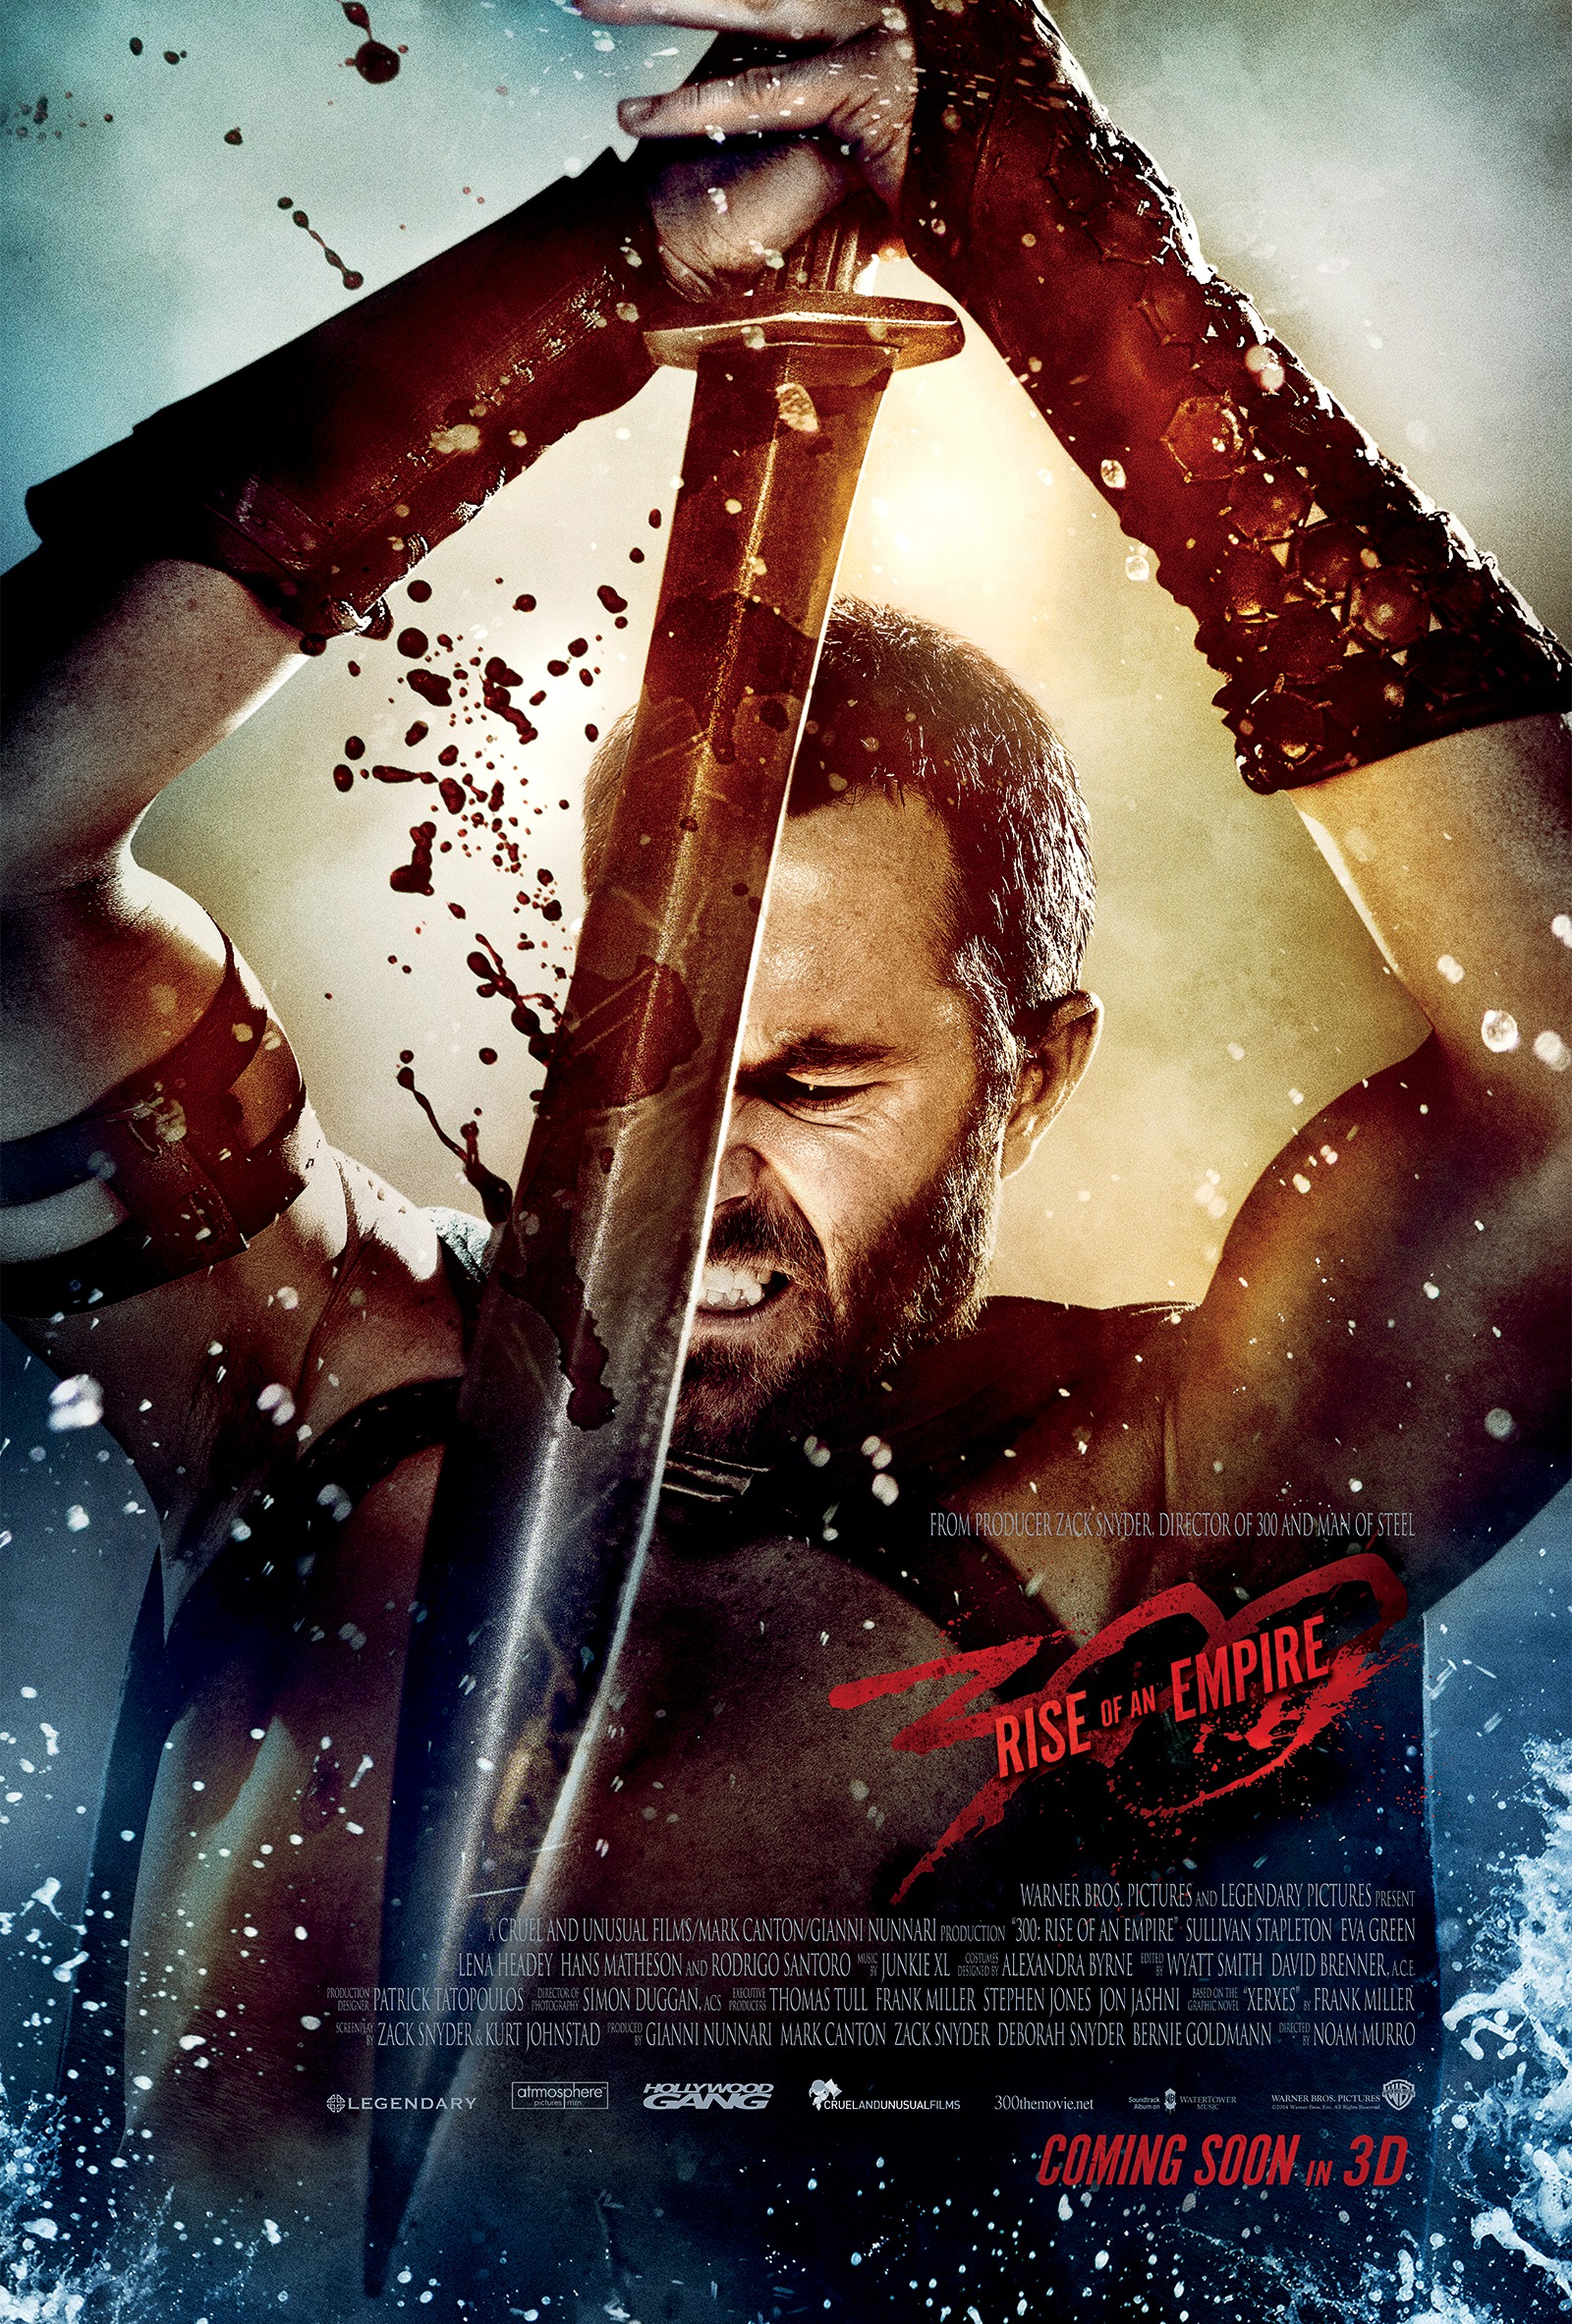 300: Rise of an Empire Poster - HeyUGuys